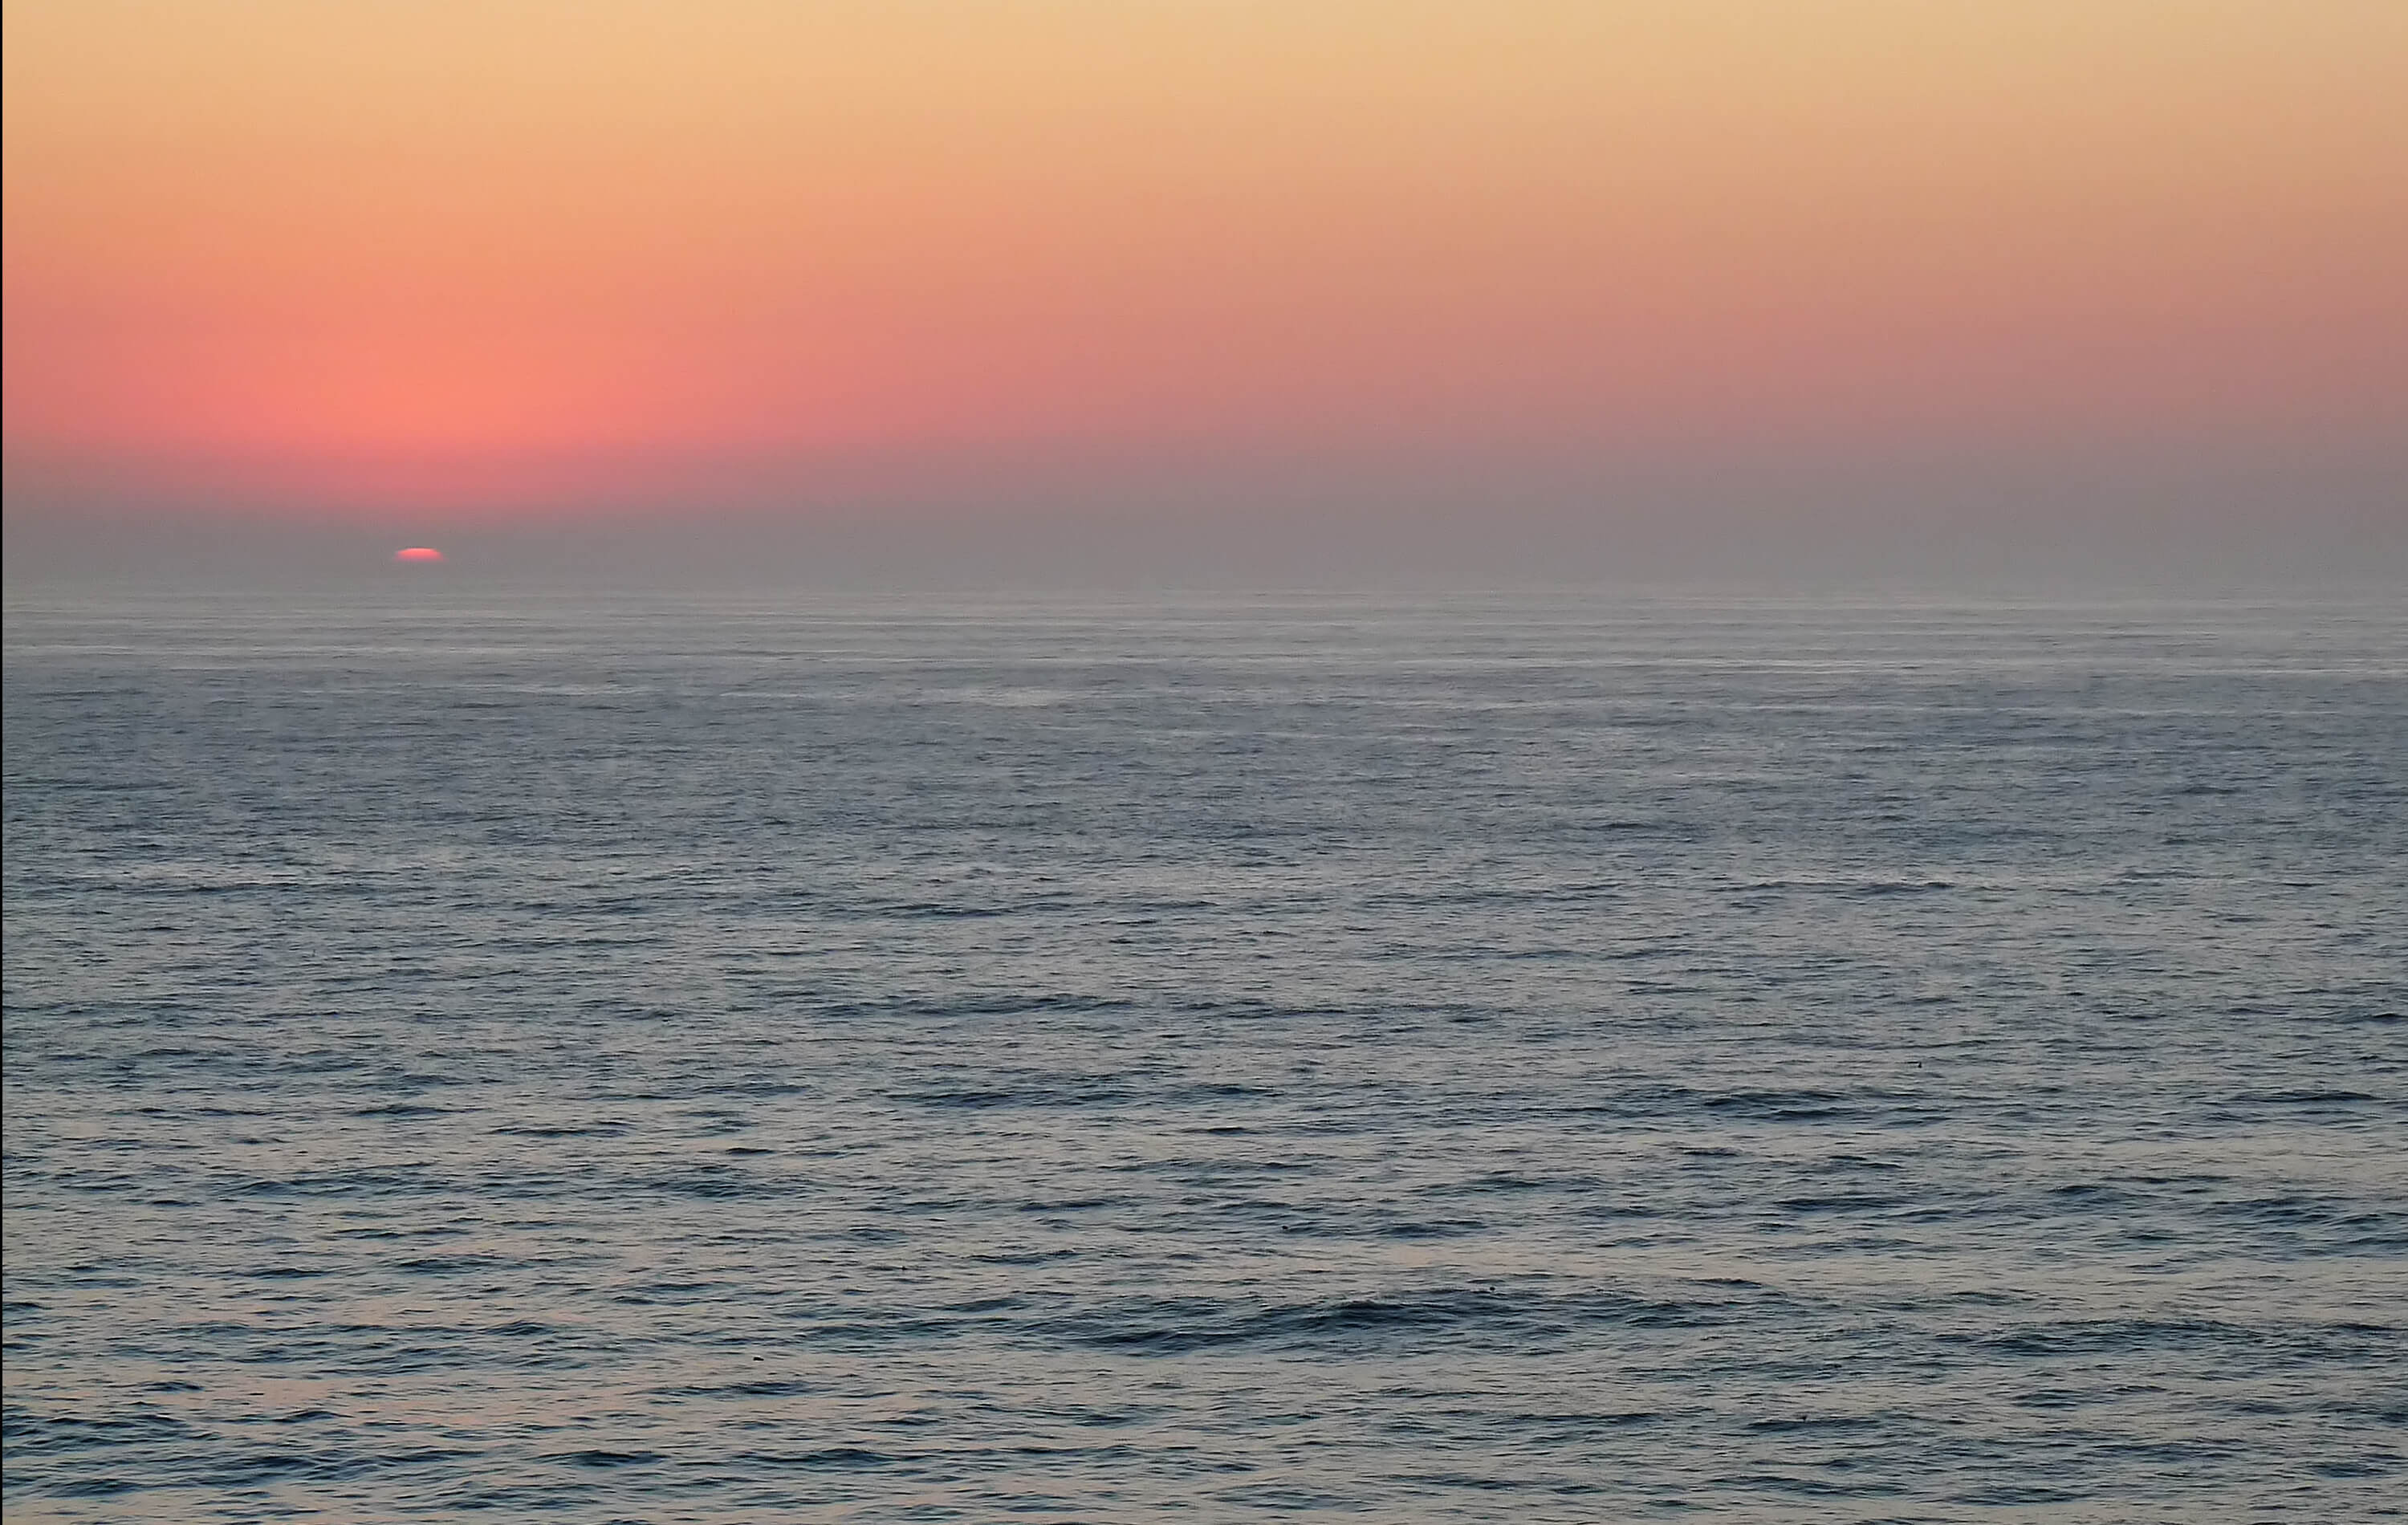 A view over an empty, calm sea to the hazy horizon at sunrise (or sunset - I can't tell!).